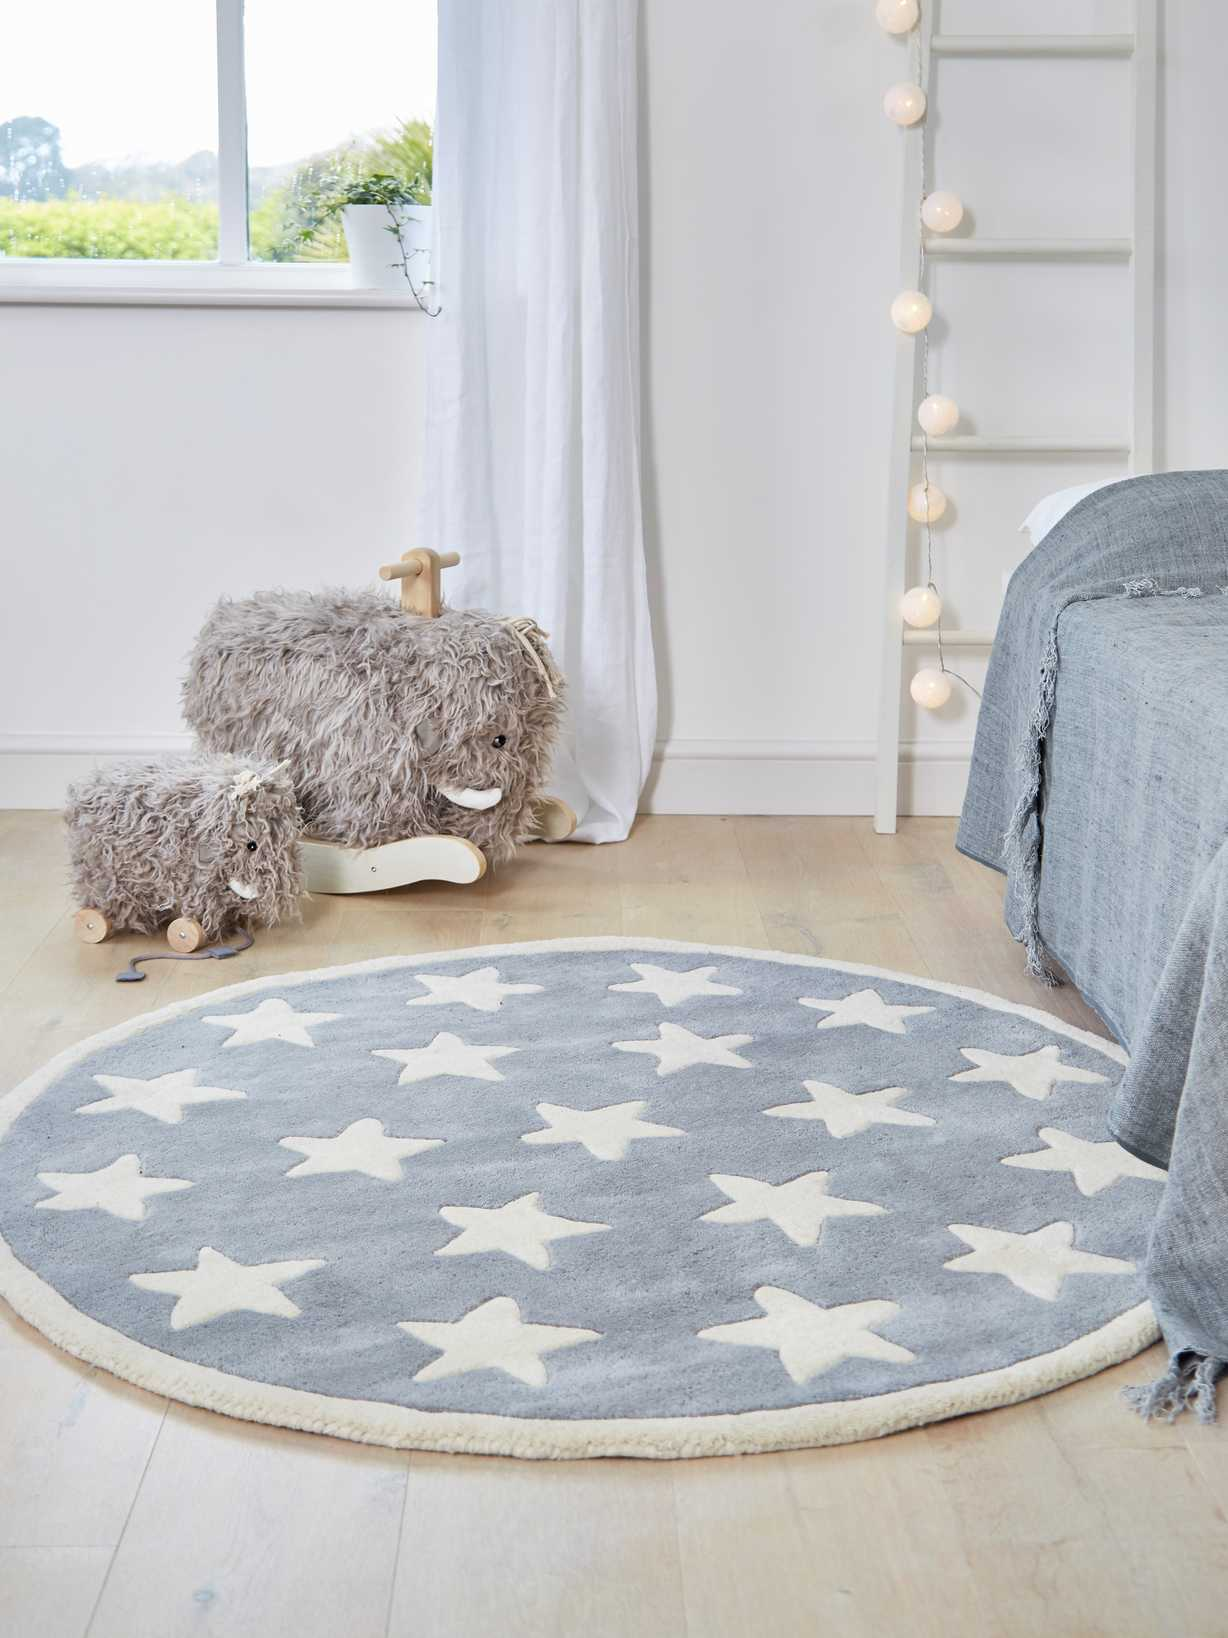 Nordic House Luxurious Round Star Rug - Grey